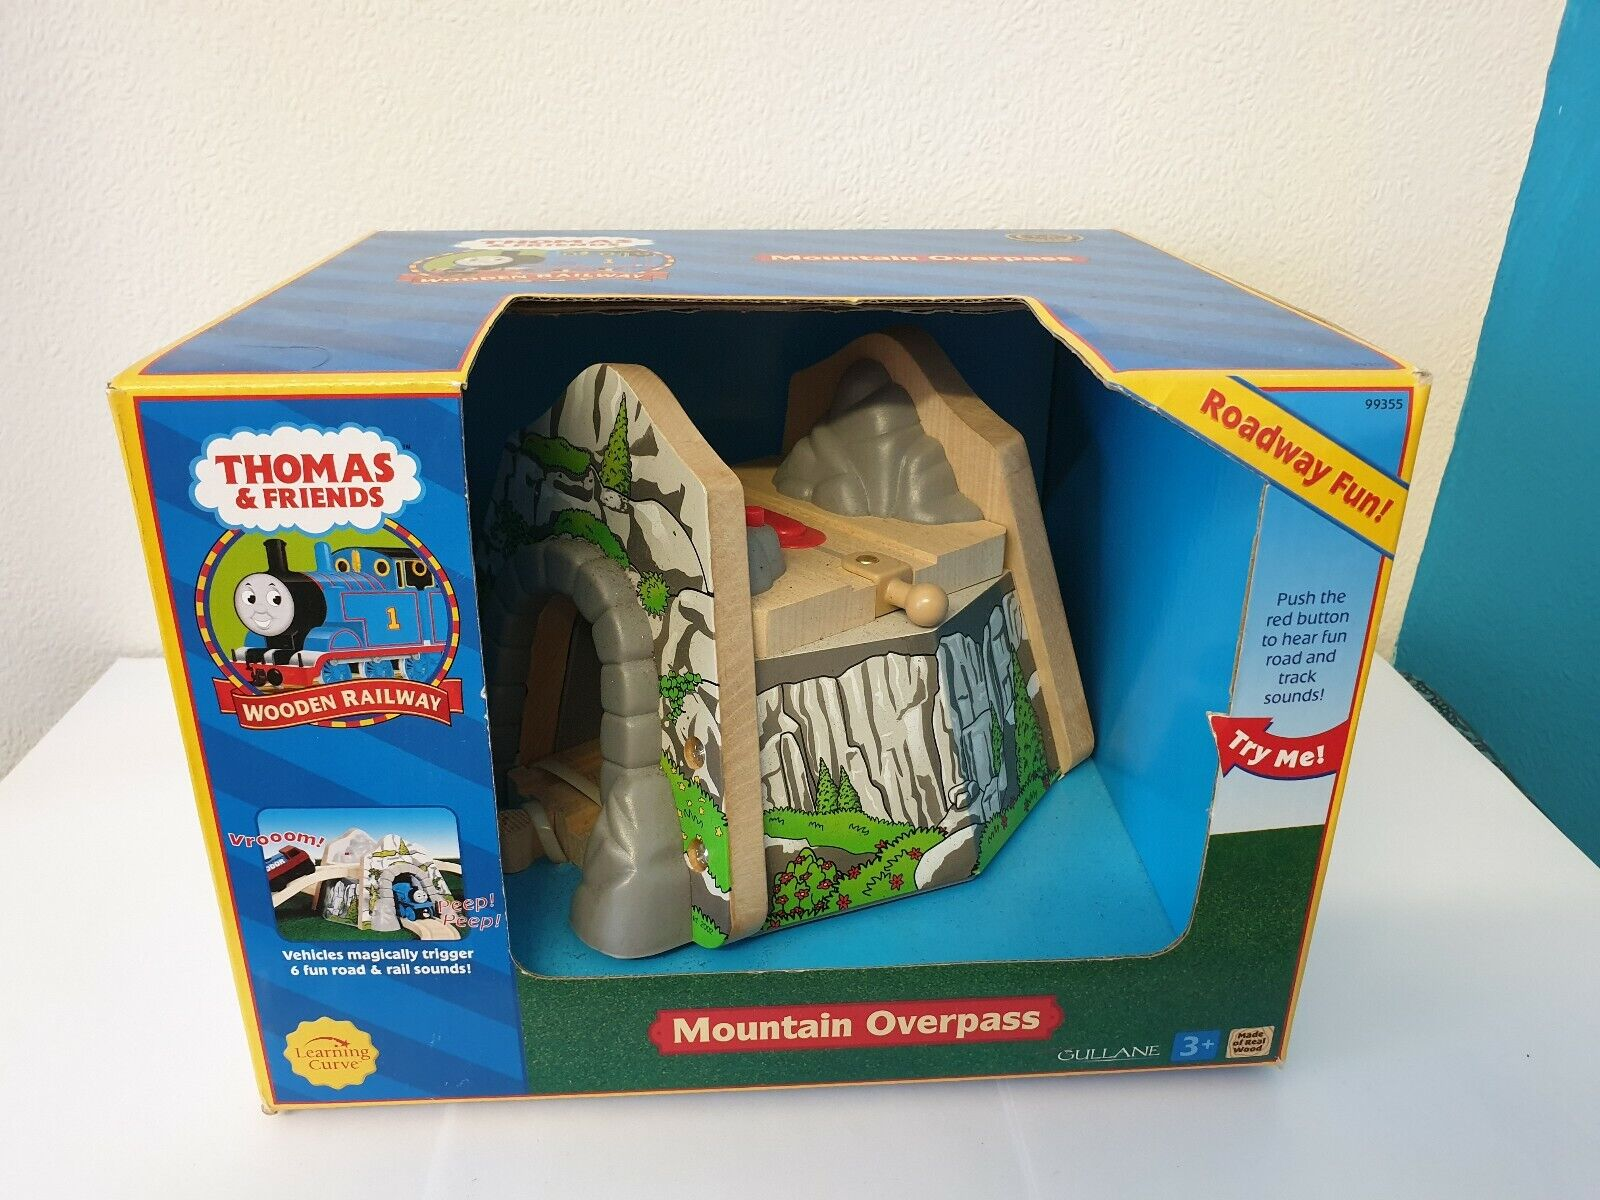 ⭐️ WOODEN THOMAS The Tank Engine MOUNTAIN OVERPASS 2002 Train Set LC 99355 ⭐️